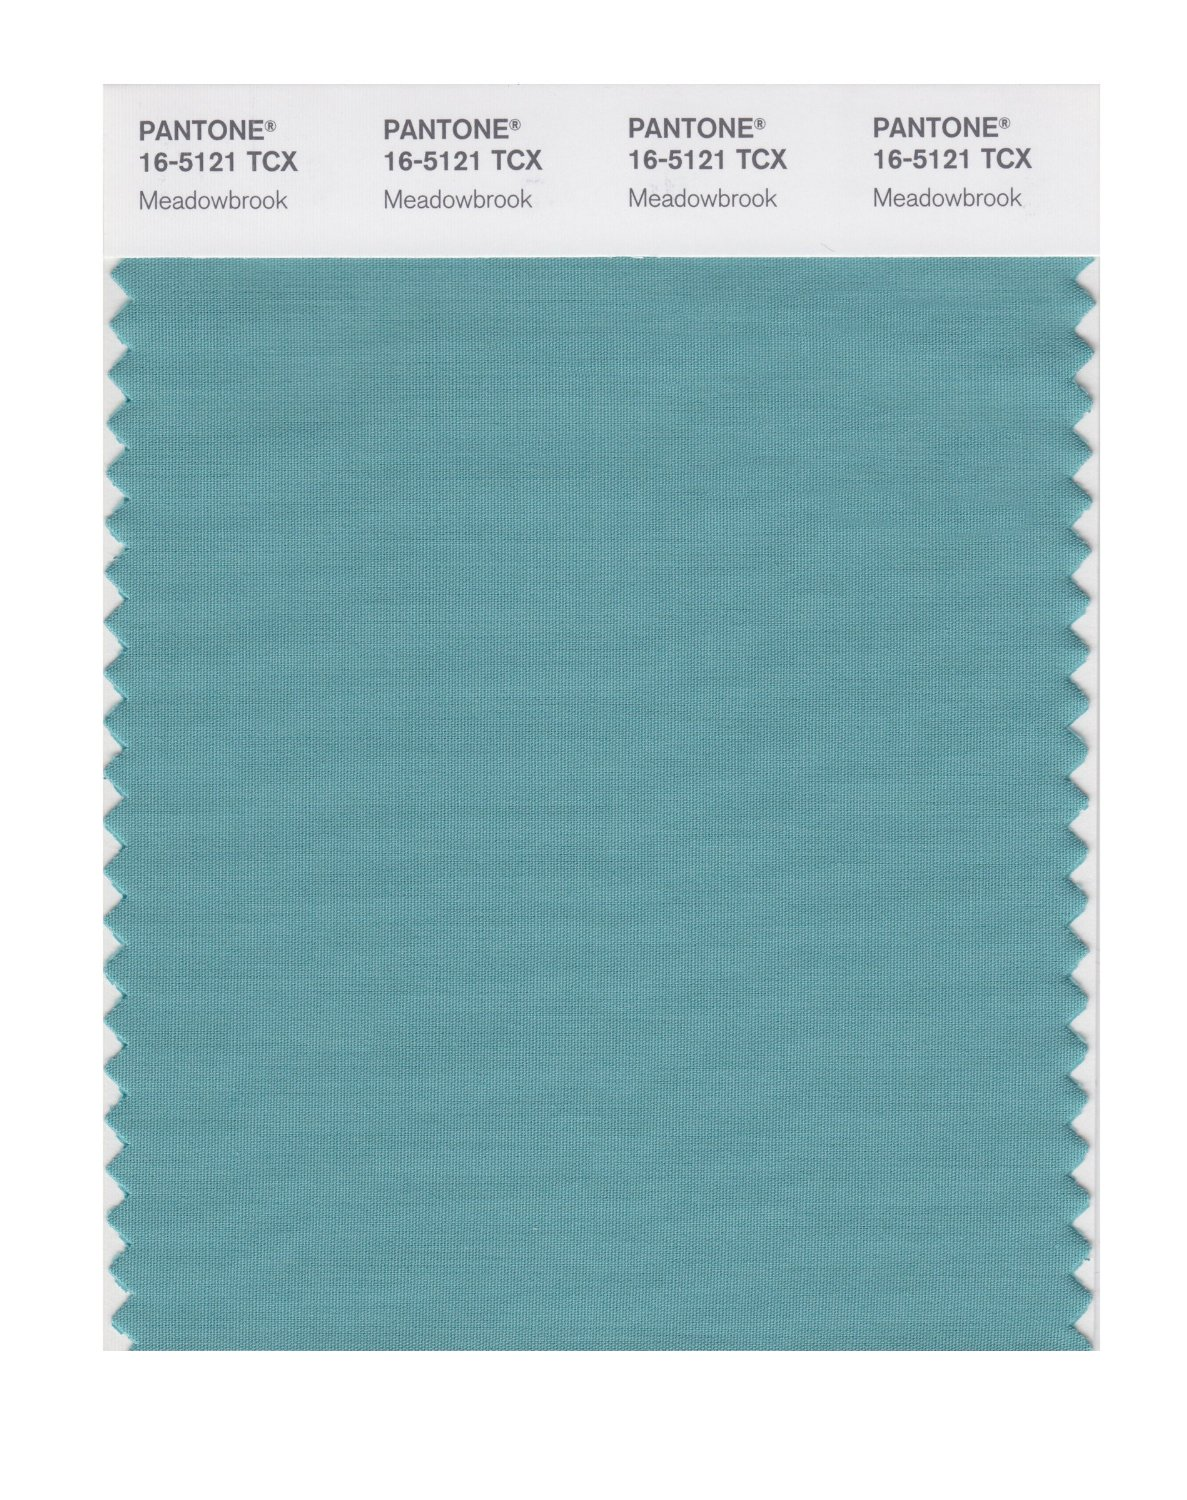 Pantone Smart Swatch 16-5121 Meadowbrook